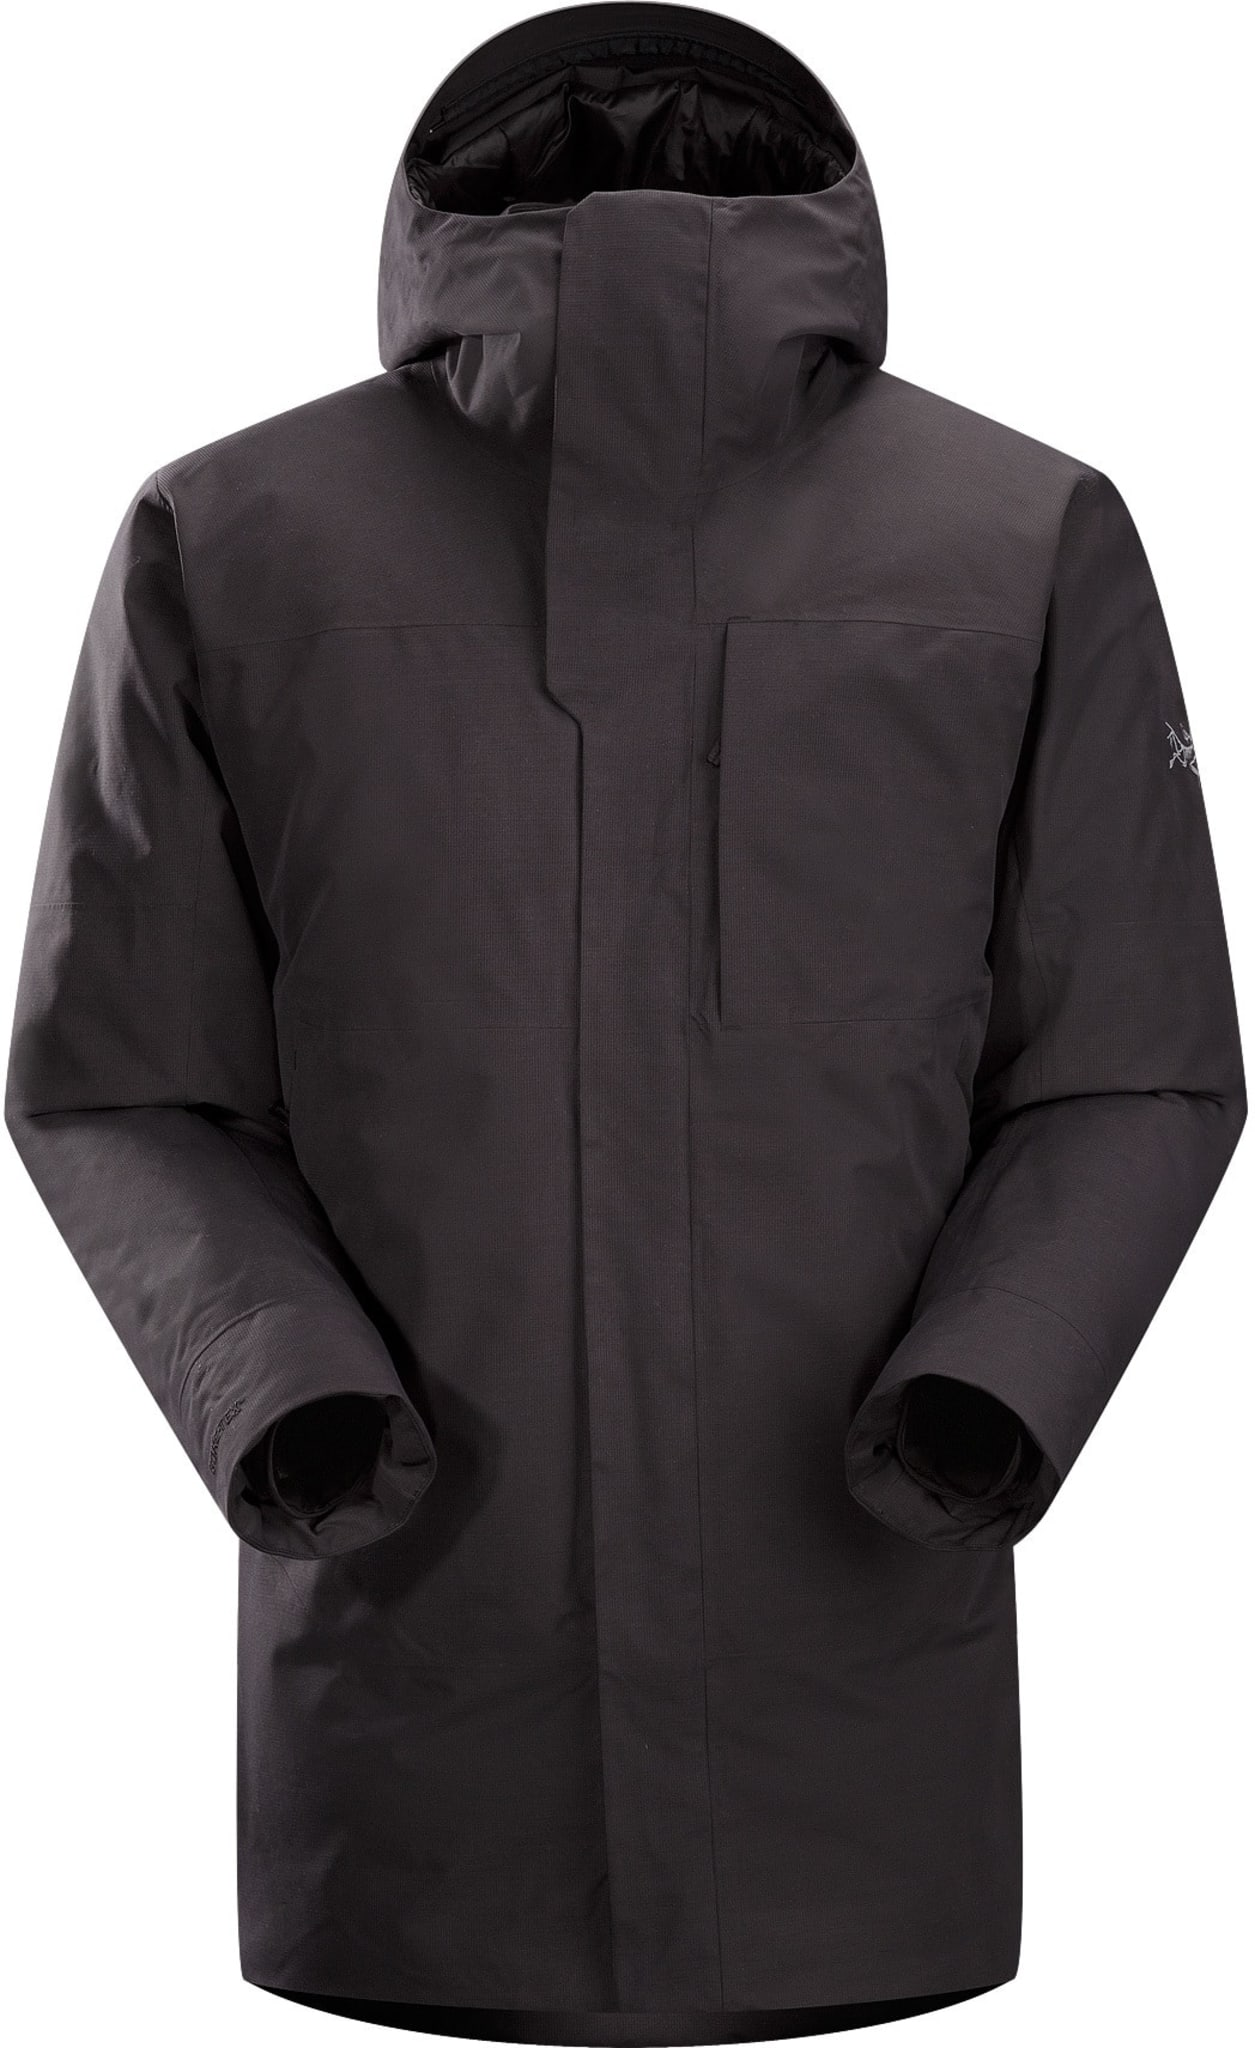 Therme Parka M